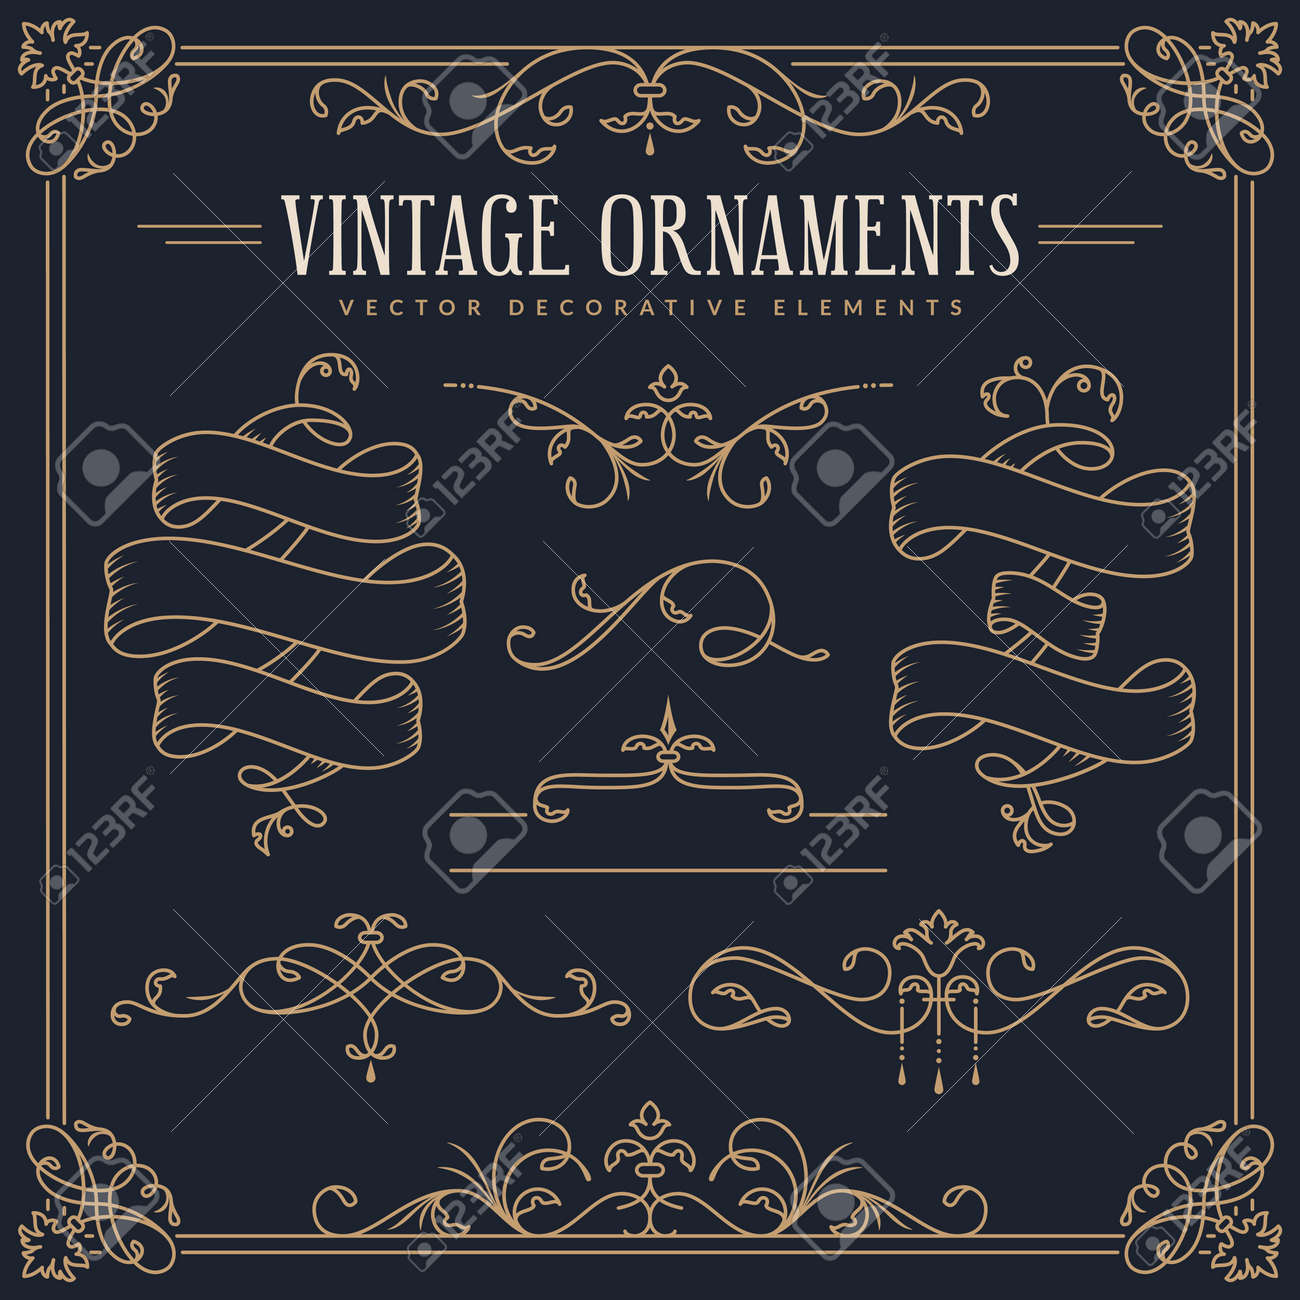 Ribbons, decorative borders, dividers, flourishes, frame. Vector vintage ornaments. Set of golden design elements isolated on dark background. - 169862049